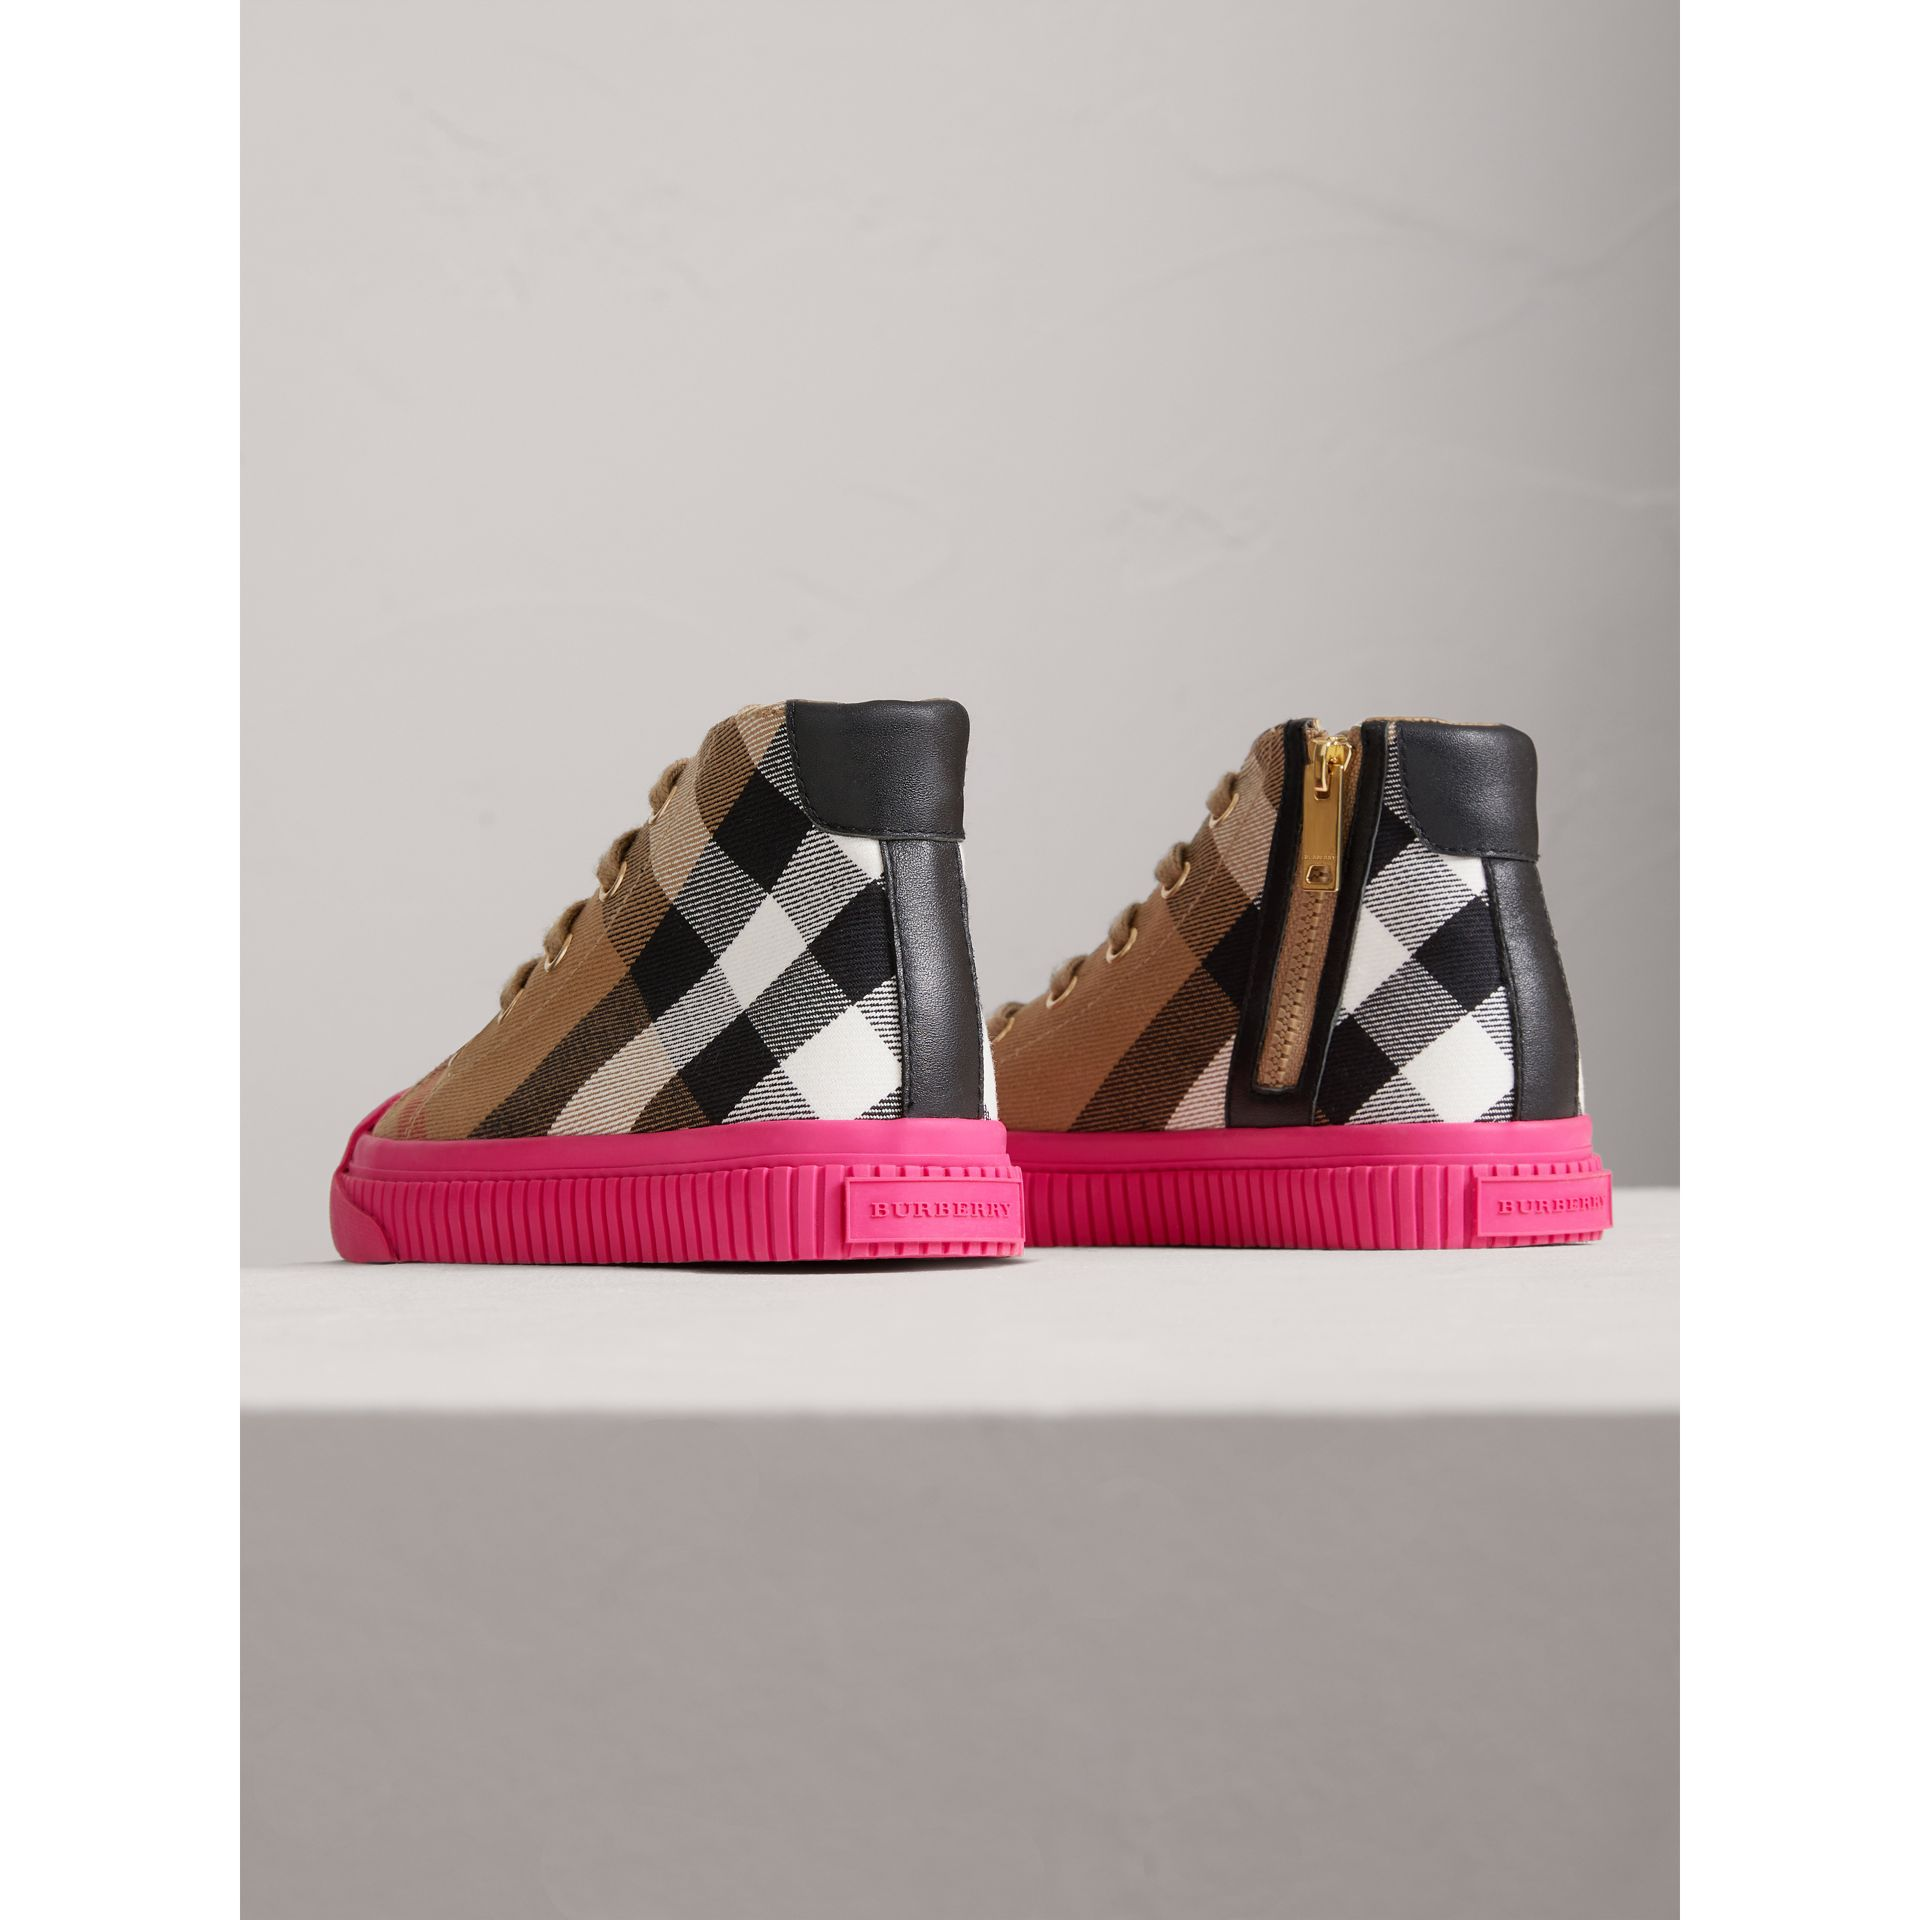 House Check and Leather High-top Sneakers in Classic/neon Pink | Burberry - gallery image 2